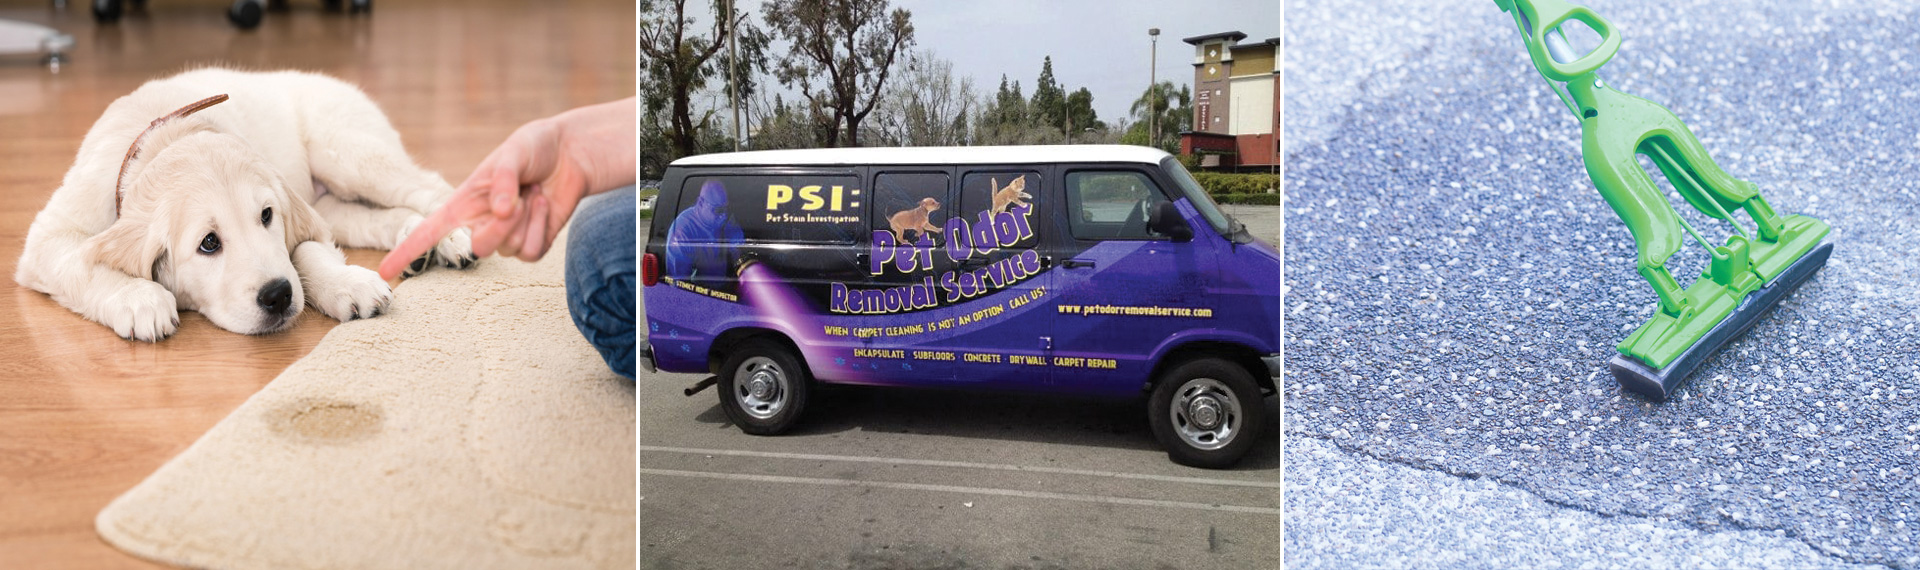 Pet Odor Removal Service Lake Forest CA